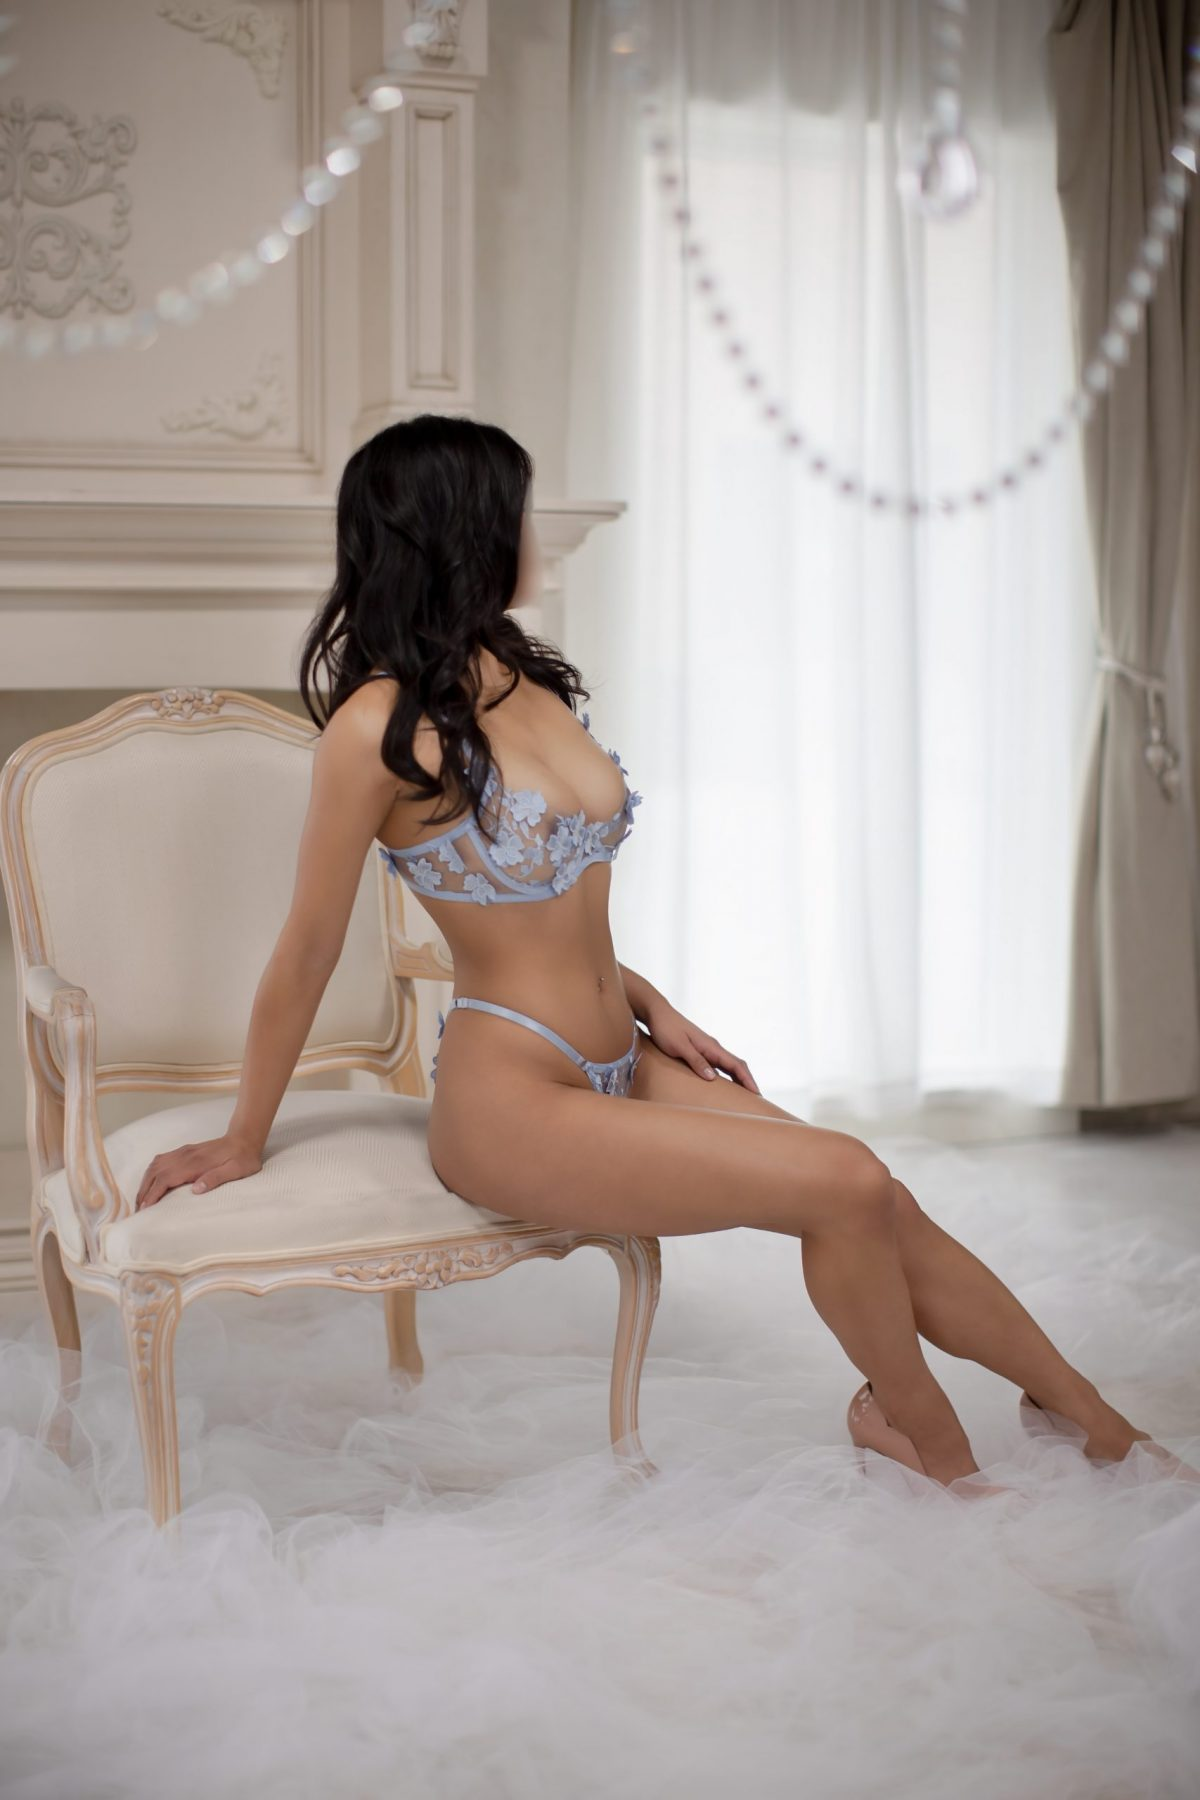 Toronto escorts companion upscale Bria Interests Duo Disability-friendly Age Young Figure Curvy Petite Breasts Natural Hair Raven-Haired Ethnicity Asian Tattoos Small New Photos Returning